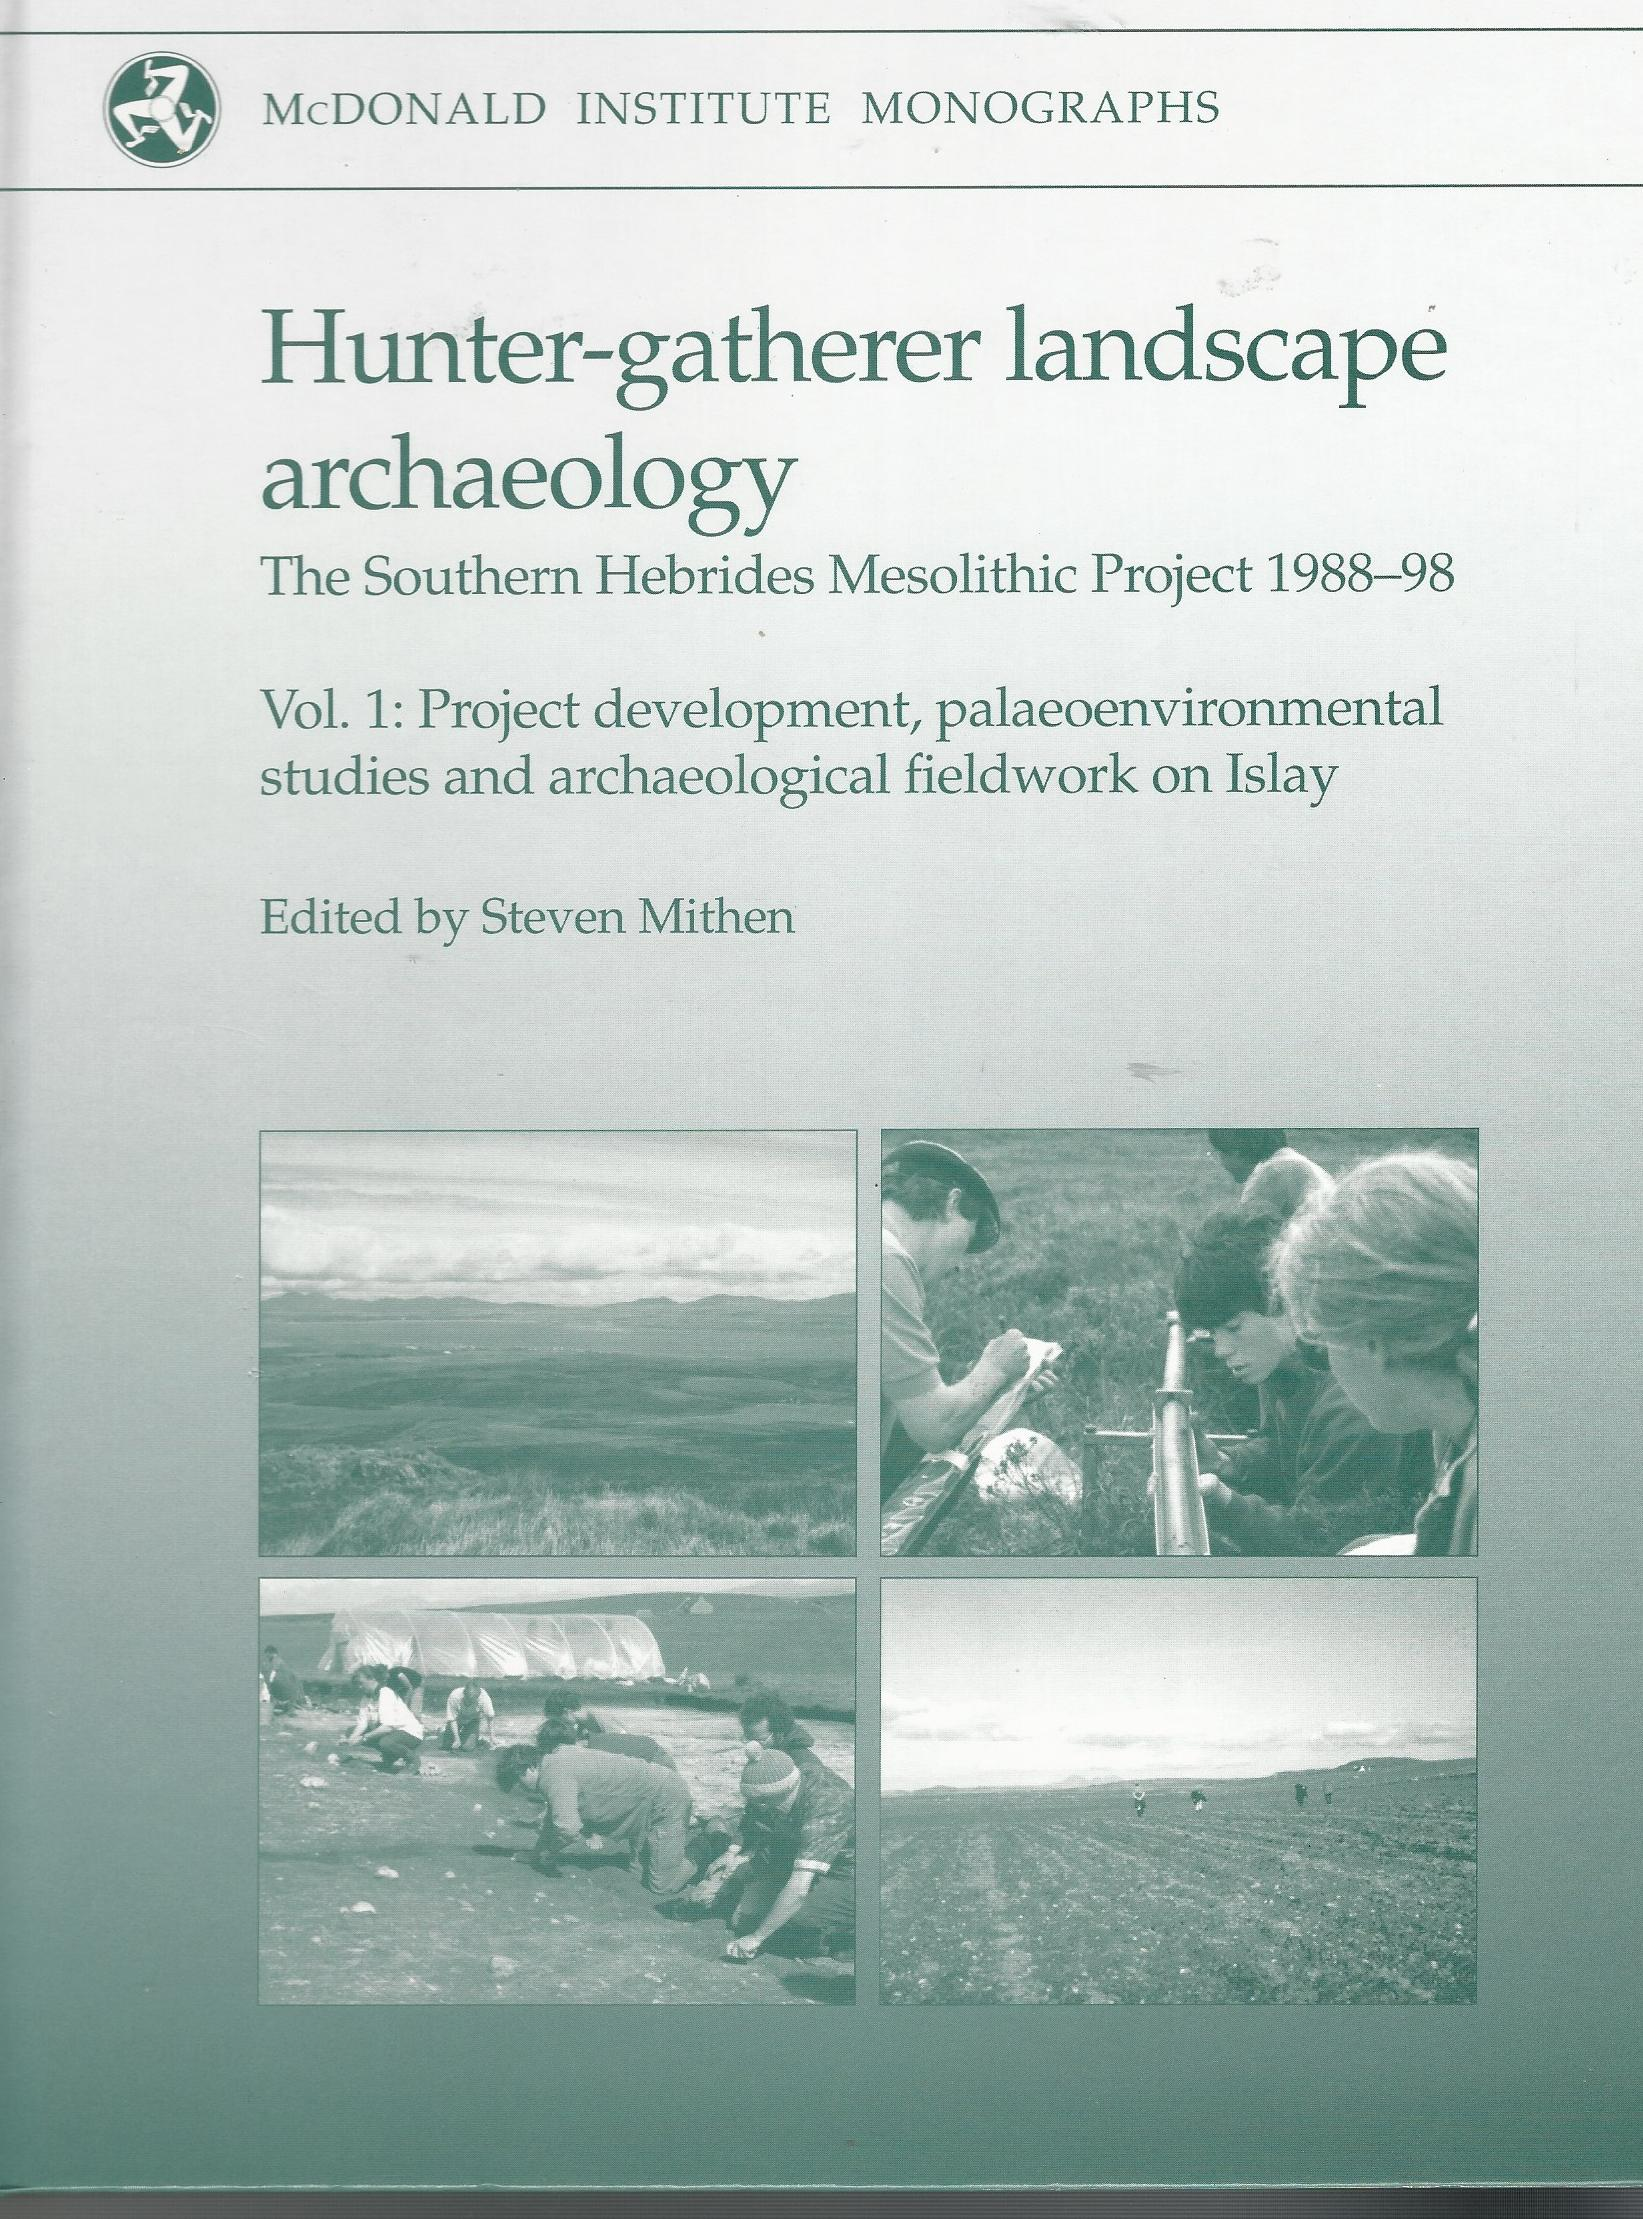 Image for Hunter-Gatherer Landscape Archaeology: The Southern Hebrides Mesolithic Project 1988-98 (McDonald Institute Monographs)